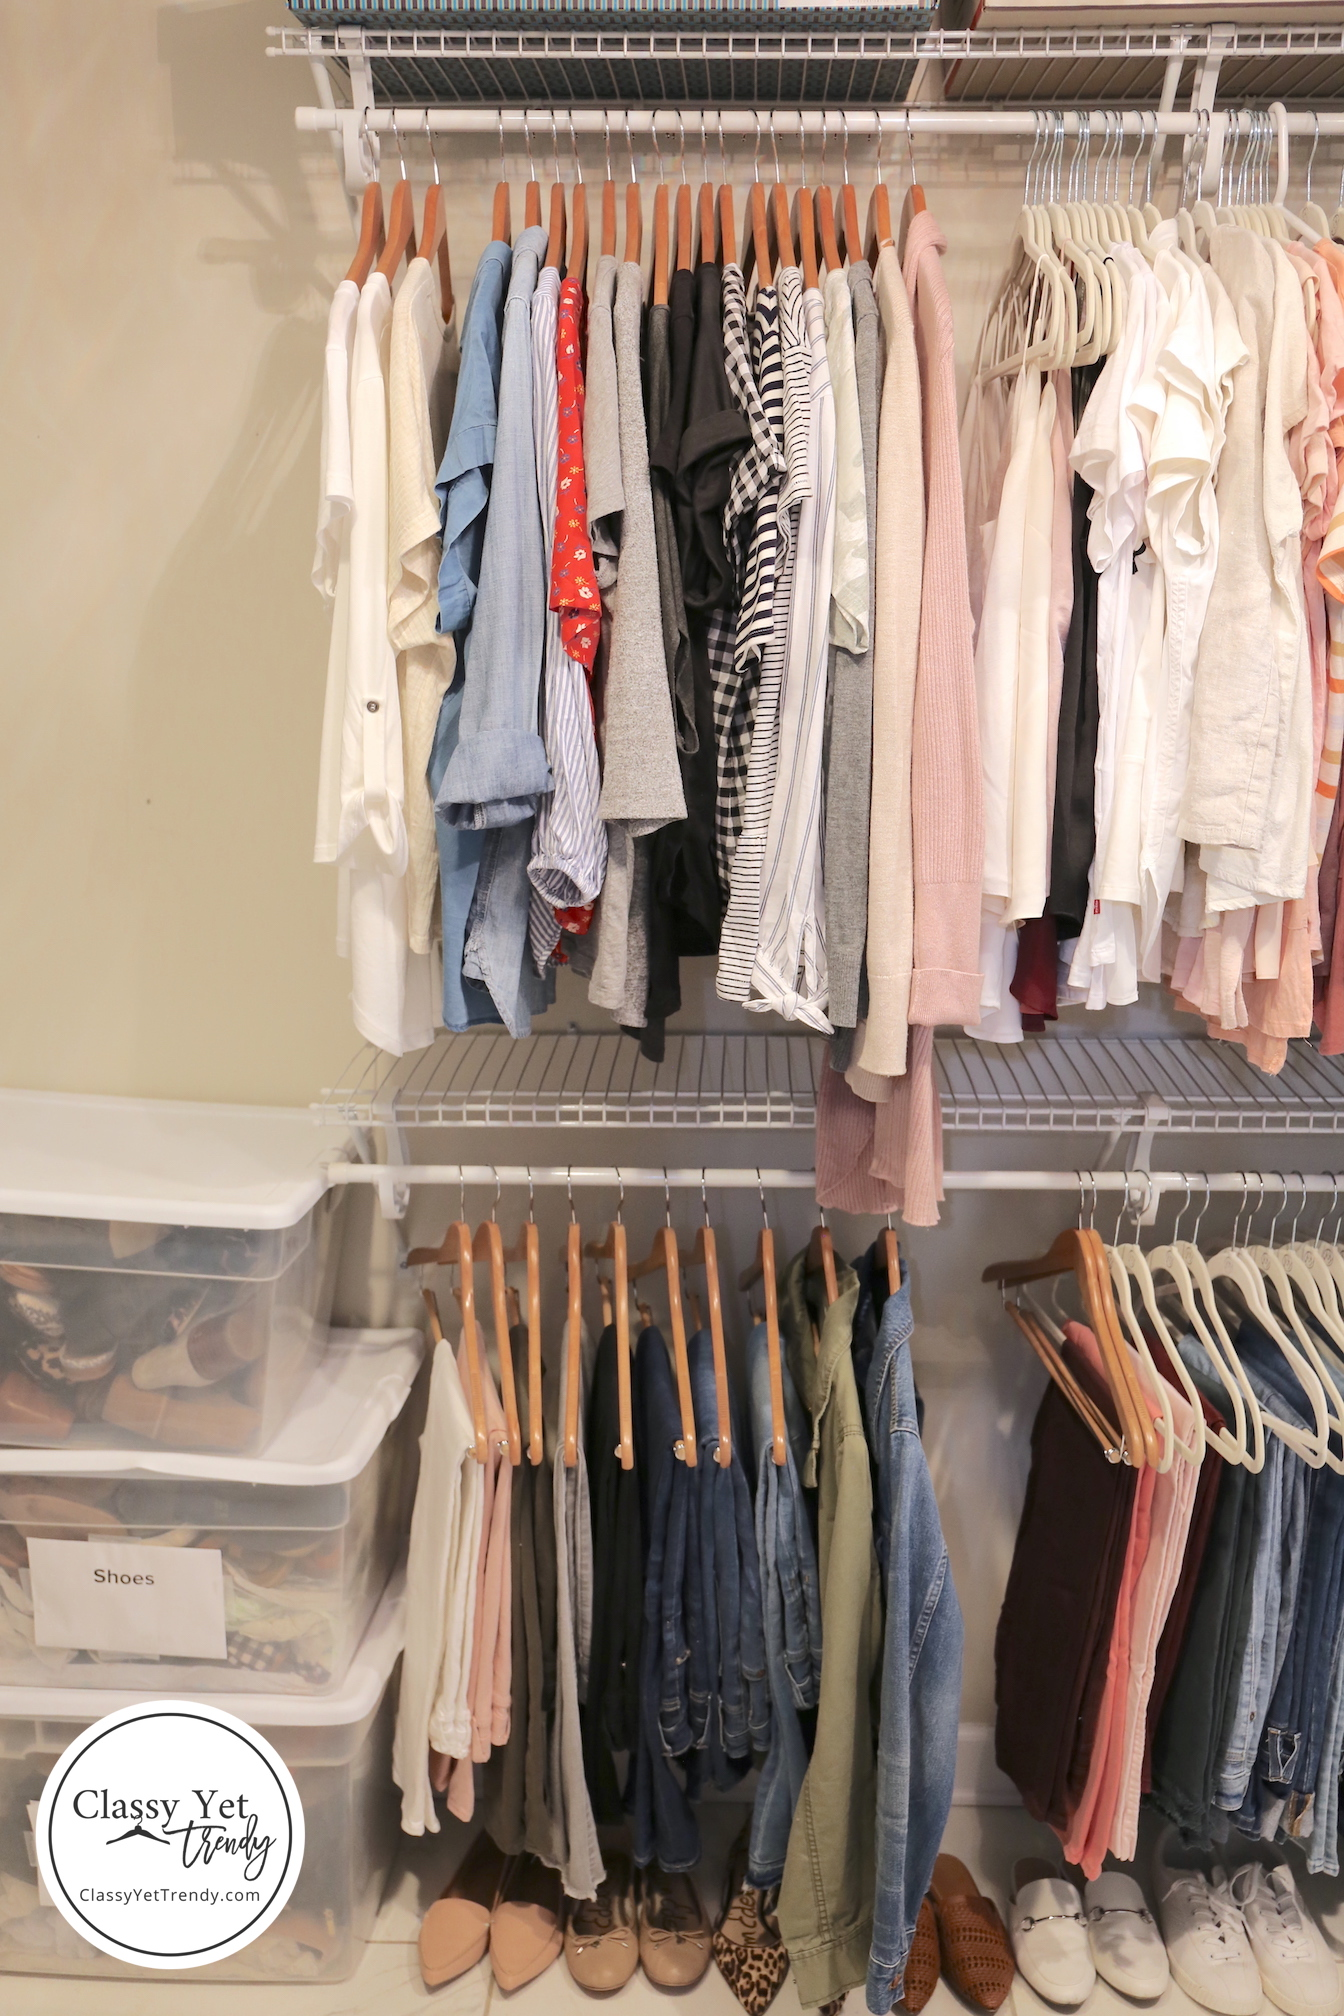 My Spring 2019 Capsule Wardrobe and Closet Tour